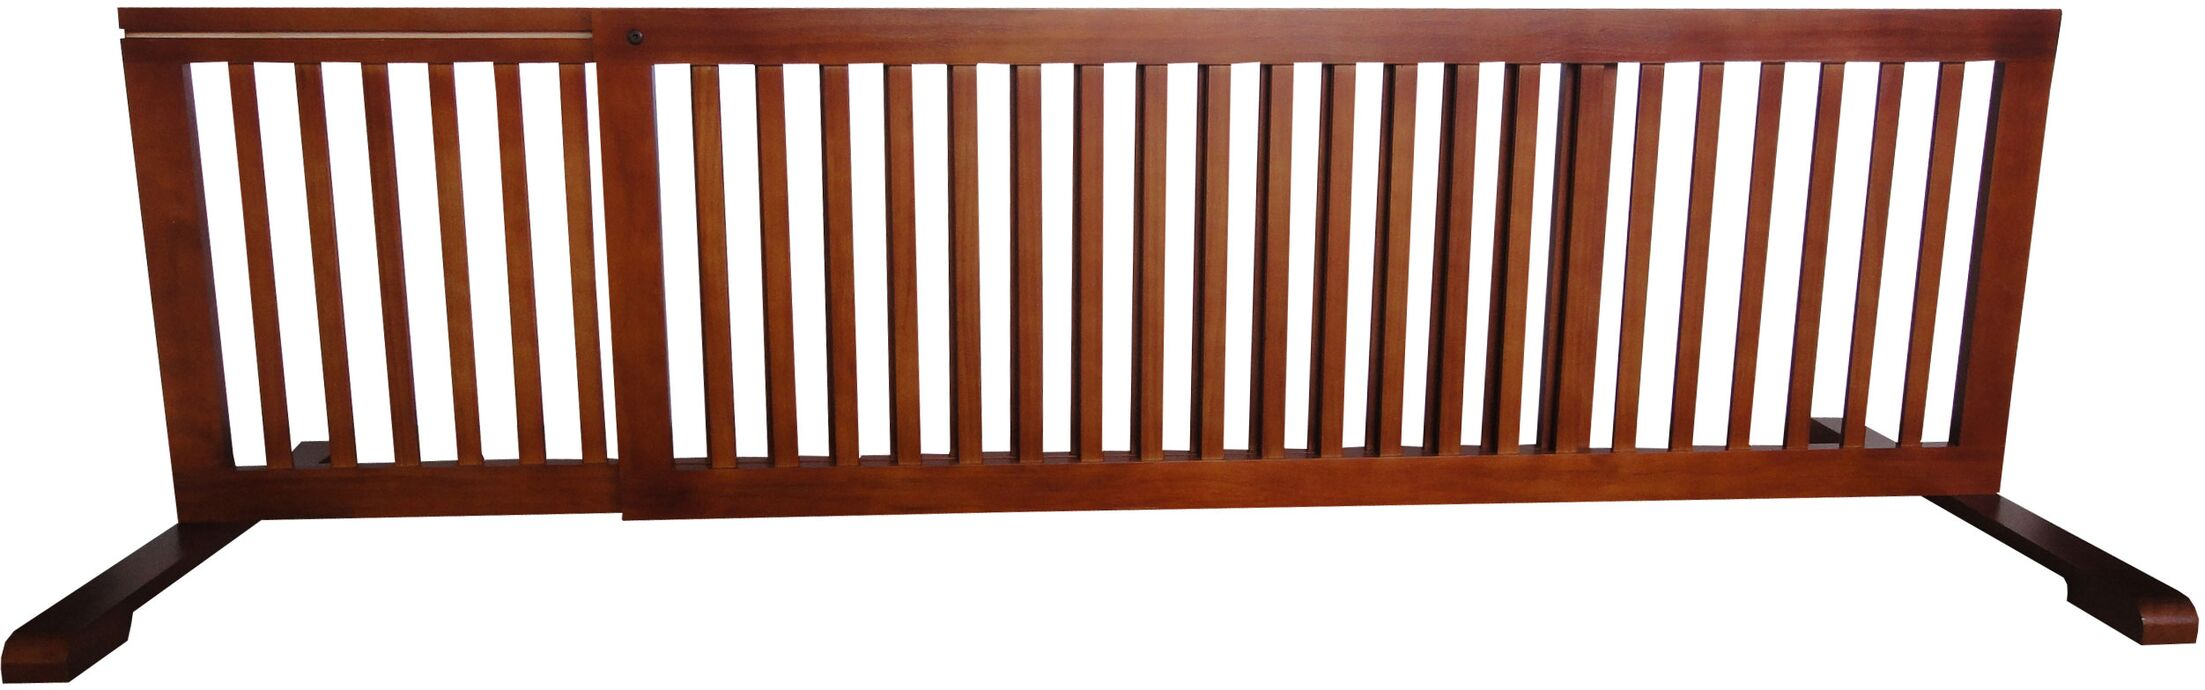 Free Standing Pet Gate Finish: Light Oak, Size: 20.1